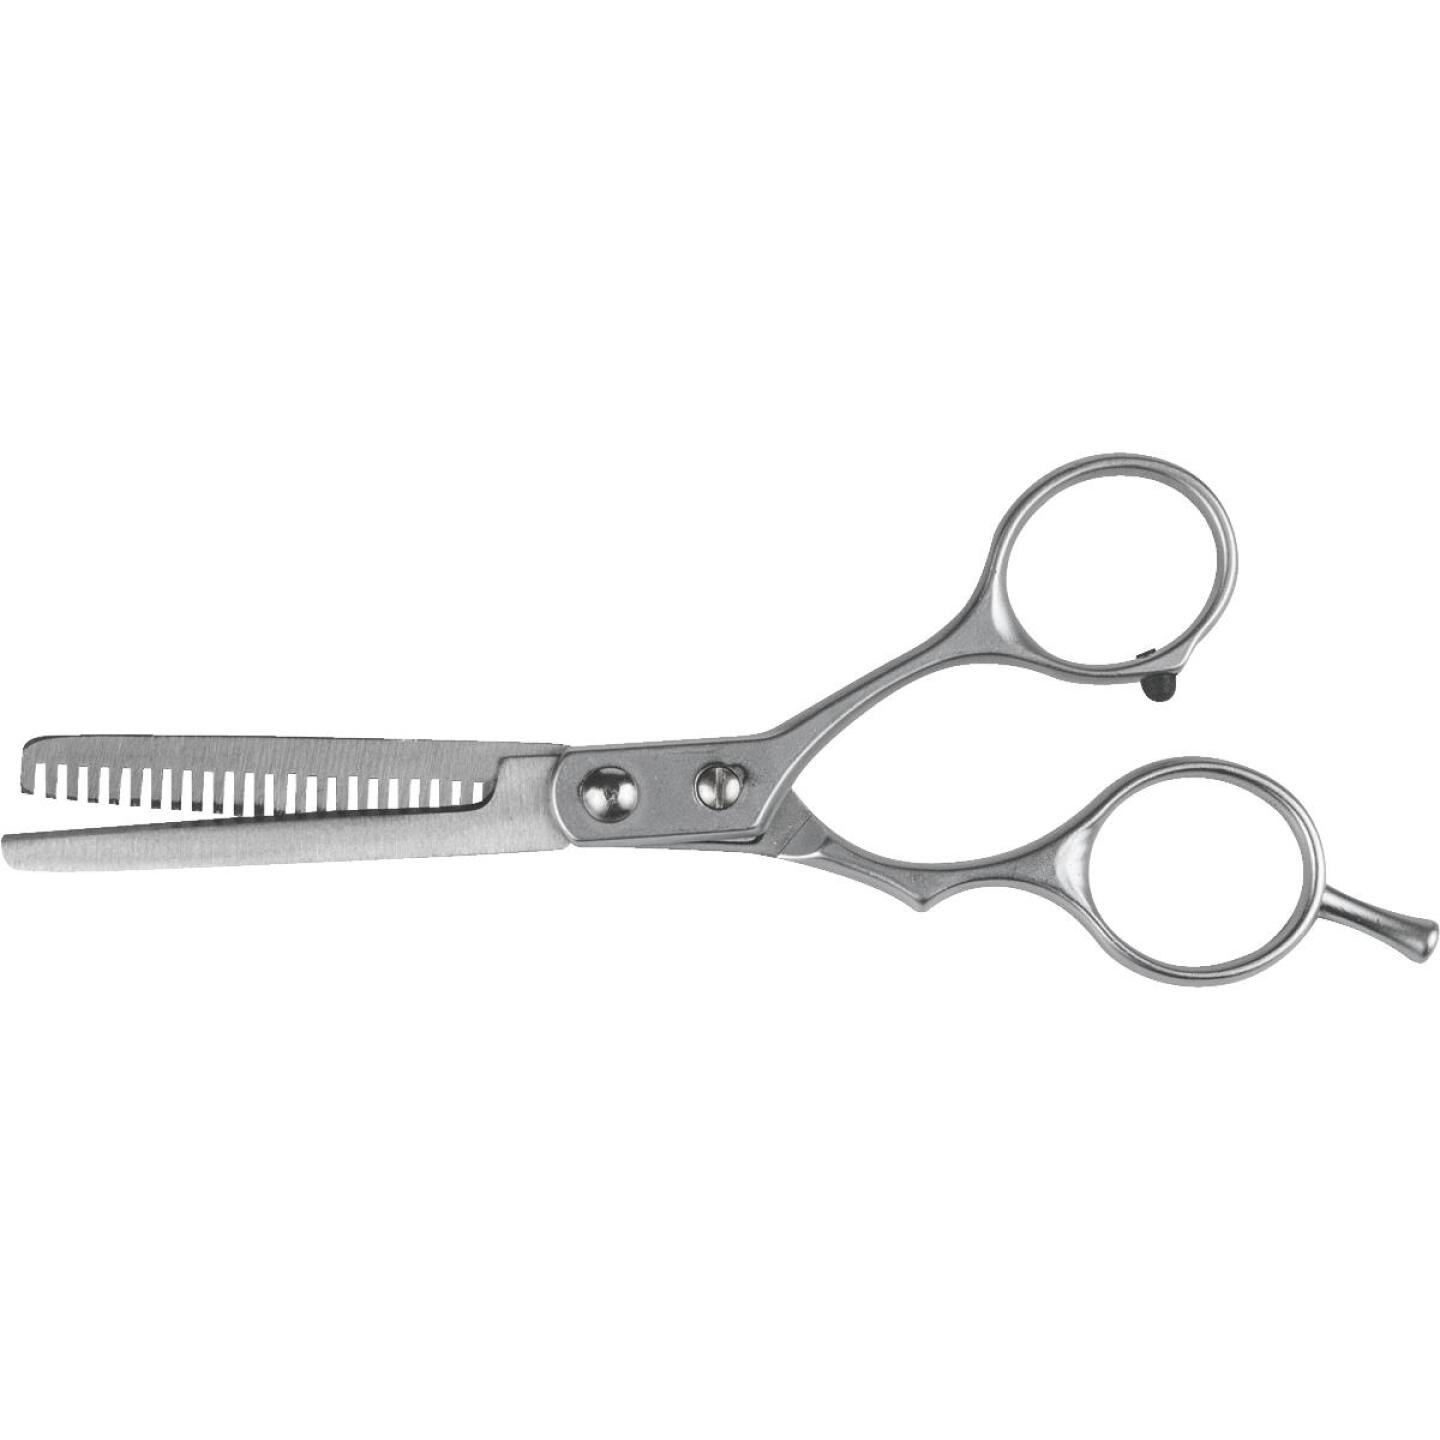 Klein 6 In. Silver Hair Thinning Shears Image 1